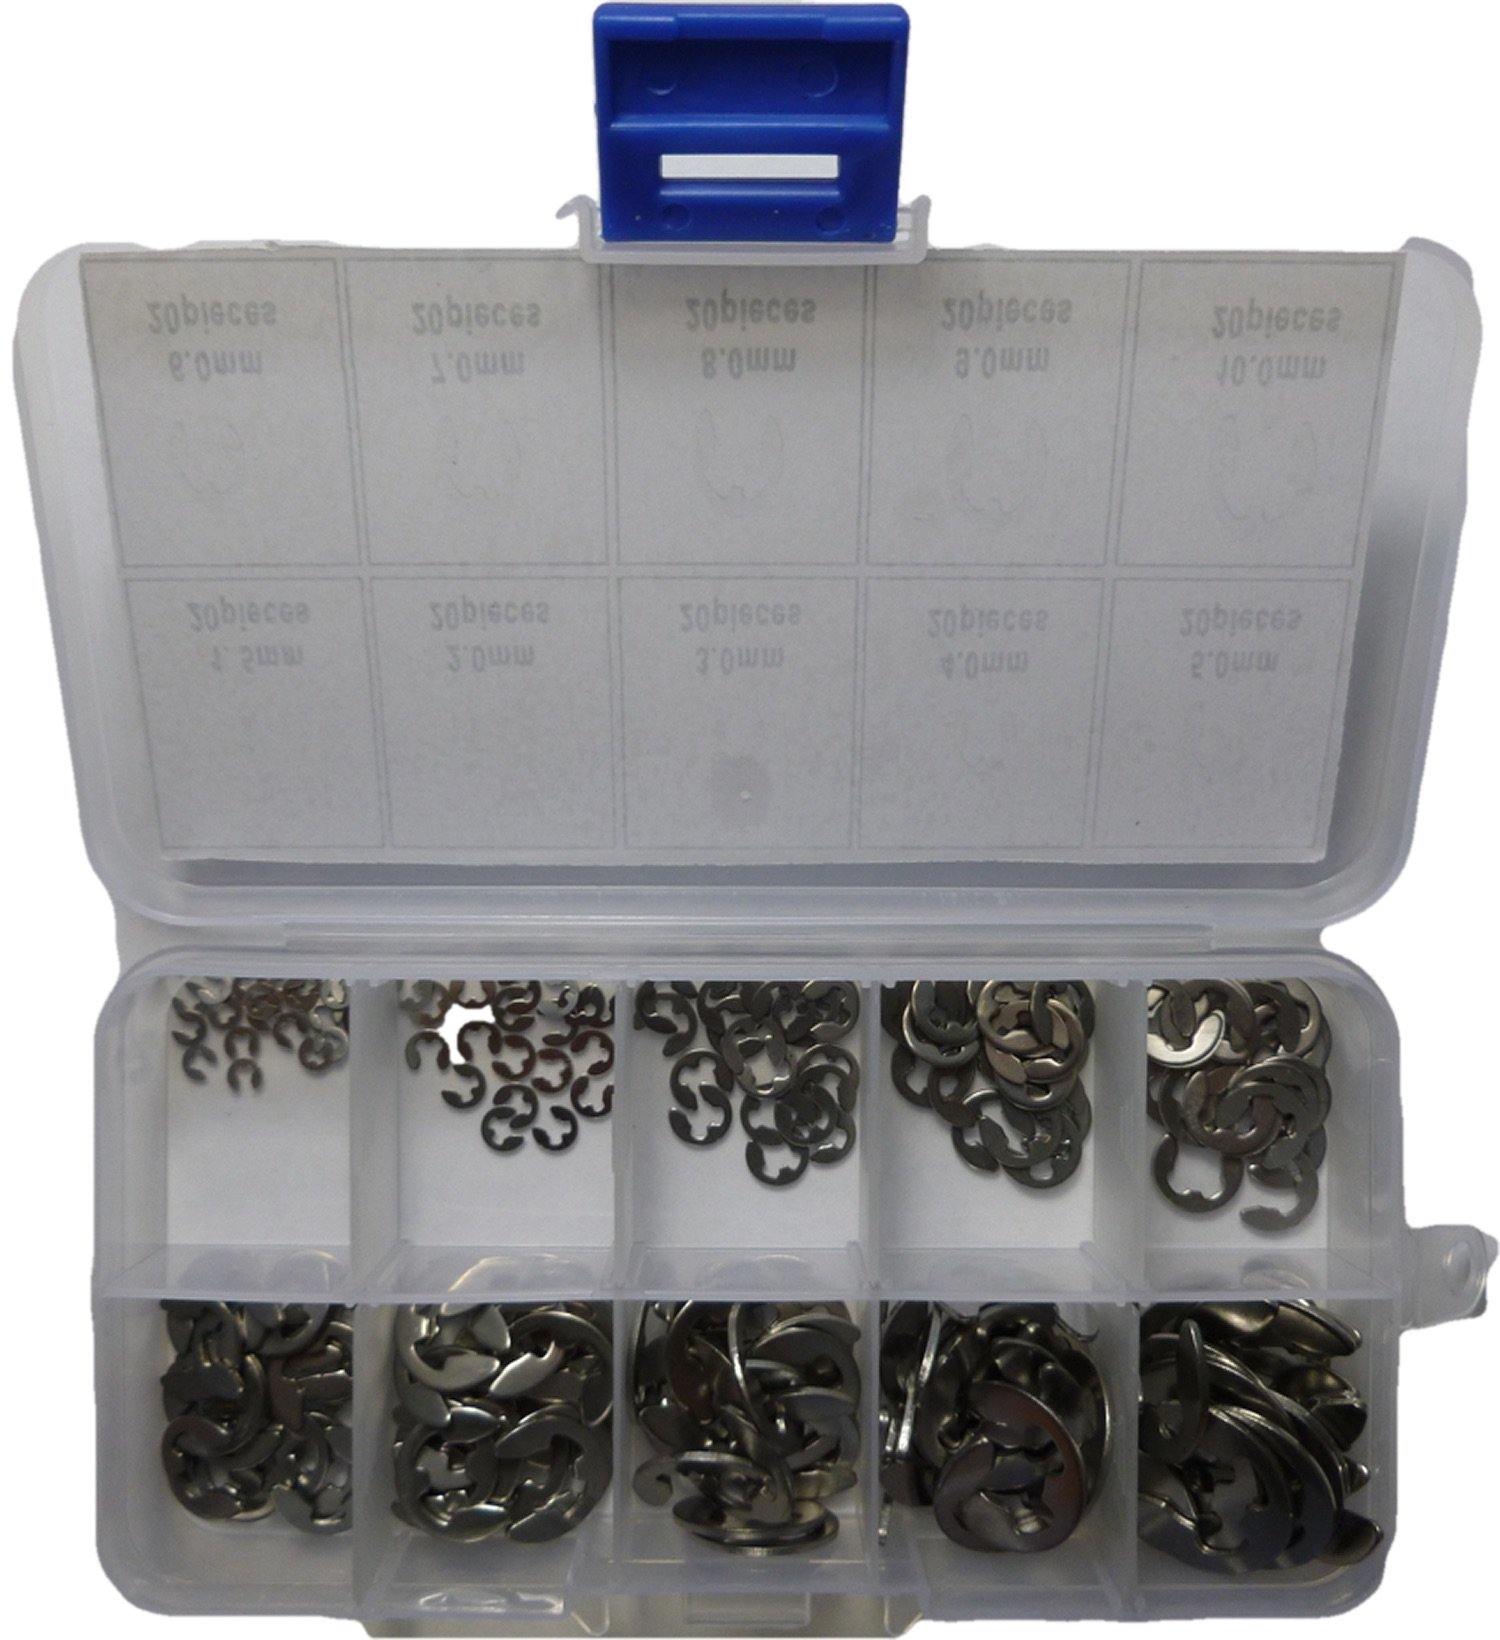 200 Piece Stainless Steel E Clip, Circlip, C Clip, Retaining Ring Assortment Pack